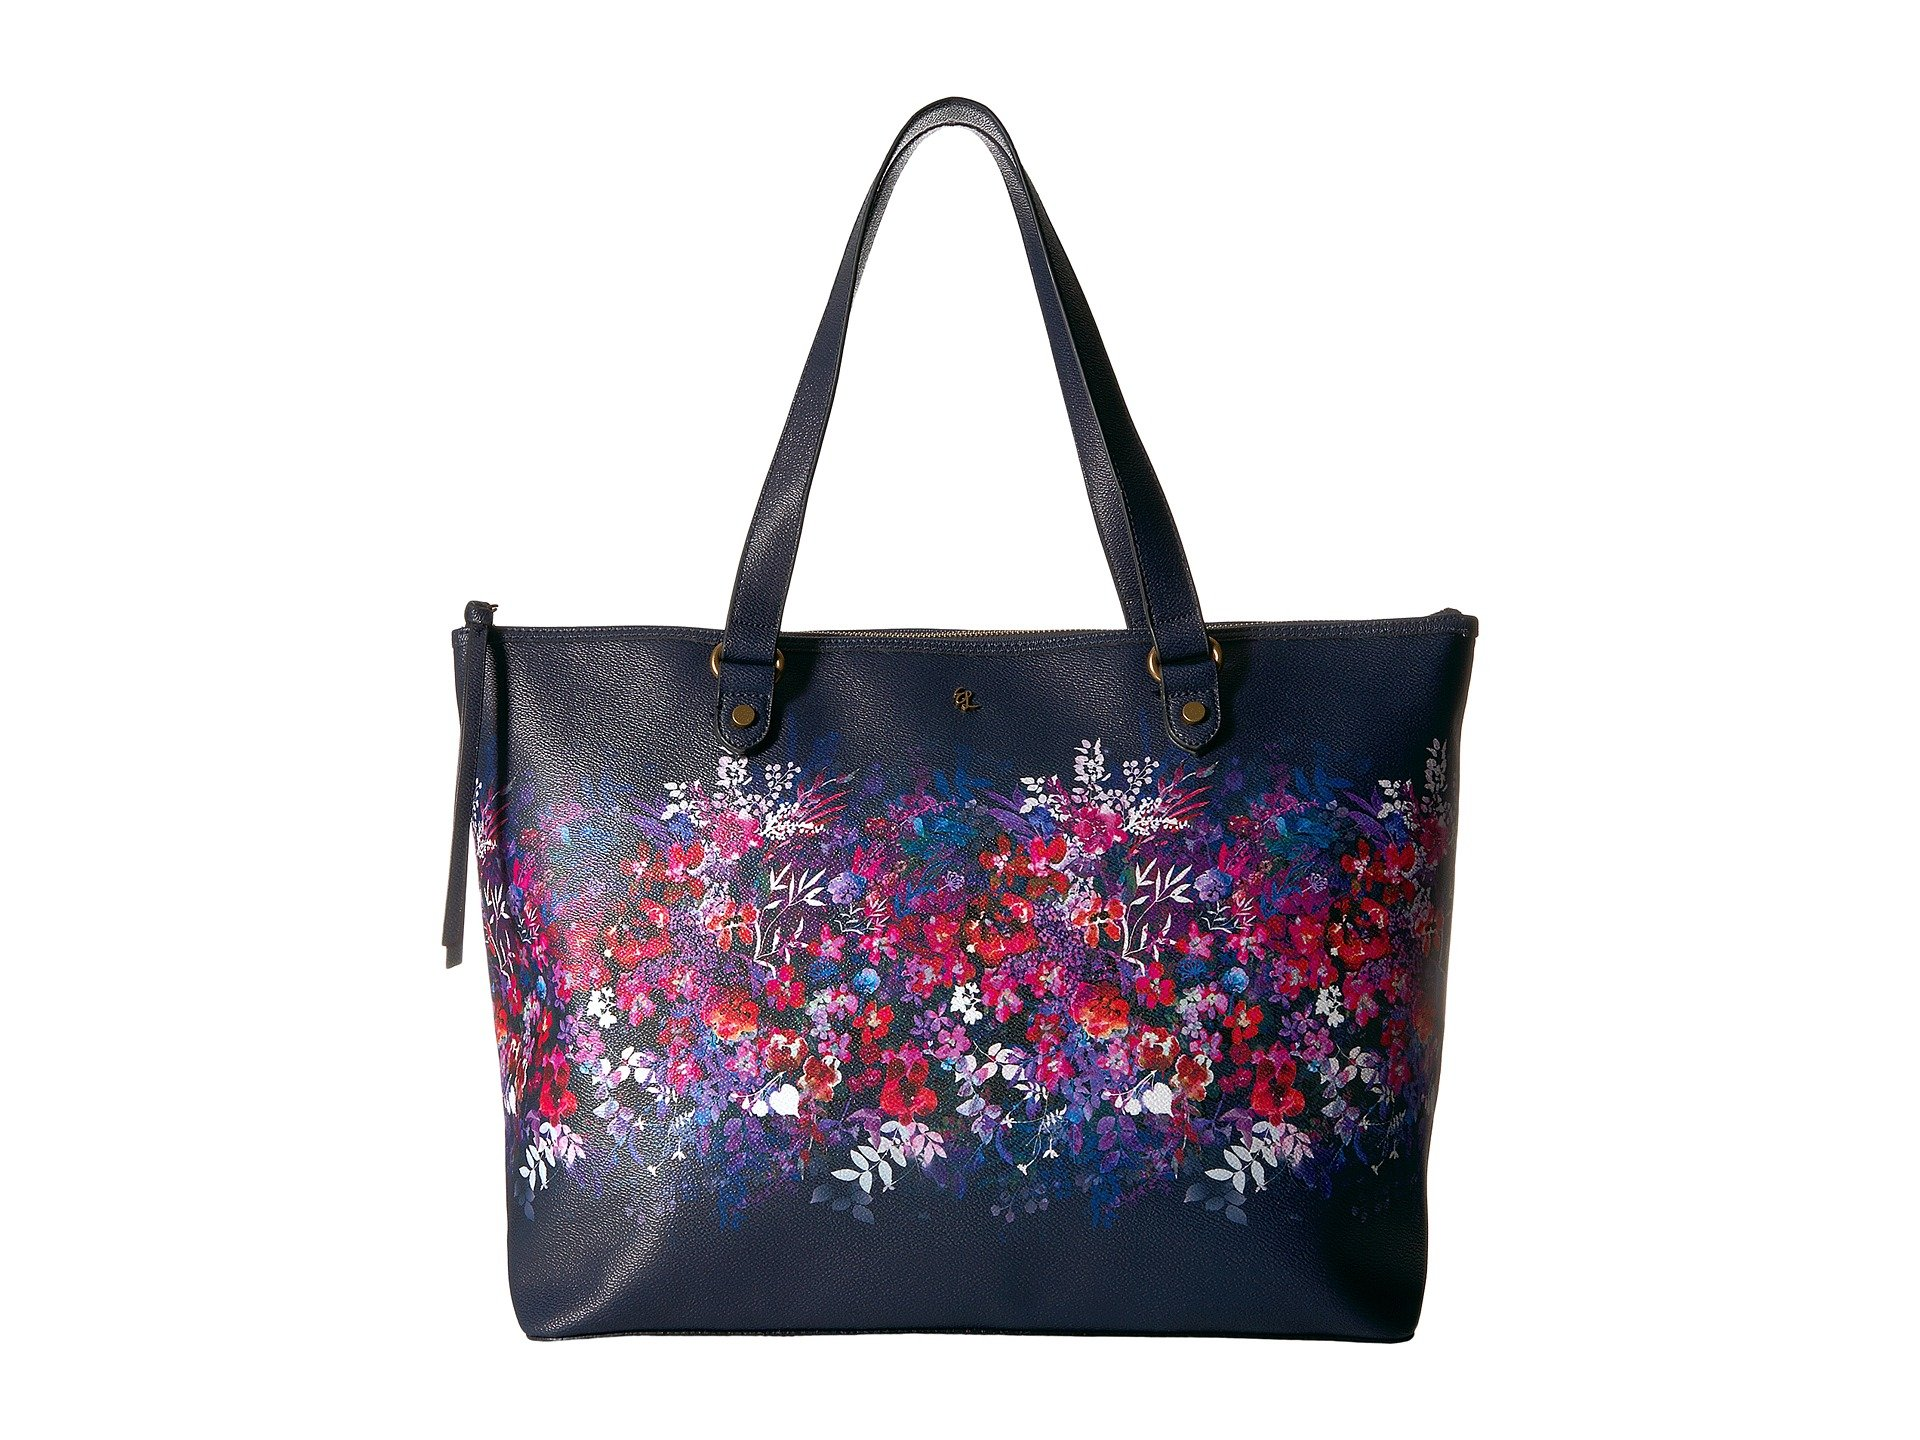 ELLIOTT LUCCA Aria Floral-Print Shoulder Tote Bag in Indigo Bouquet